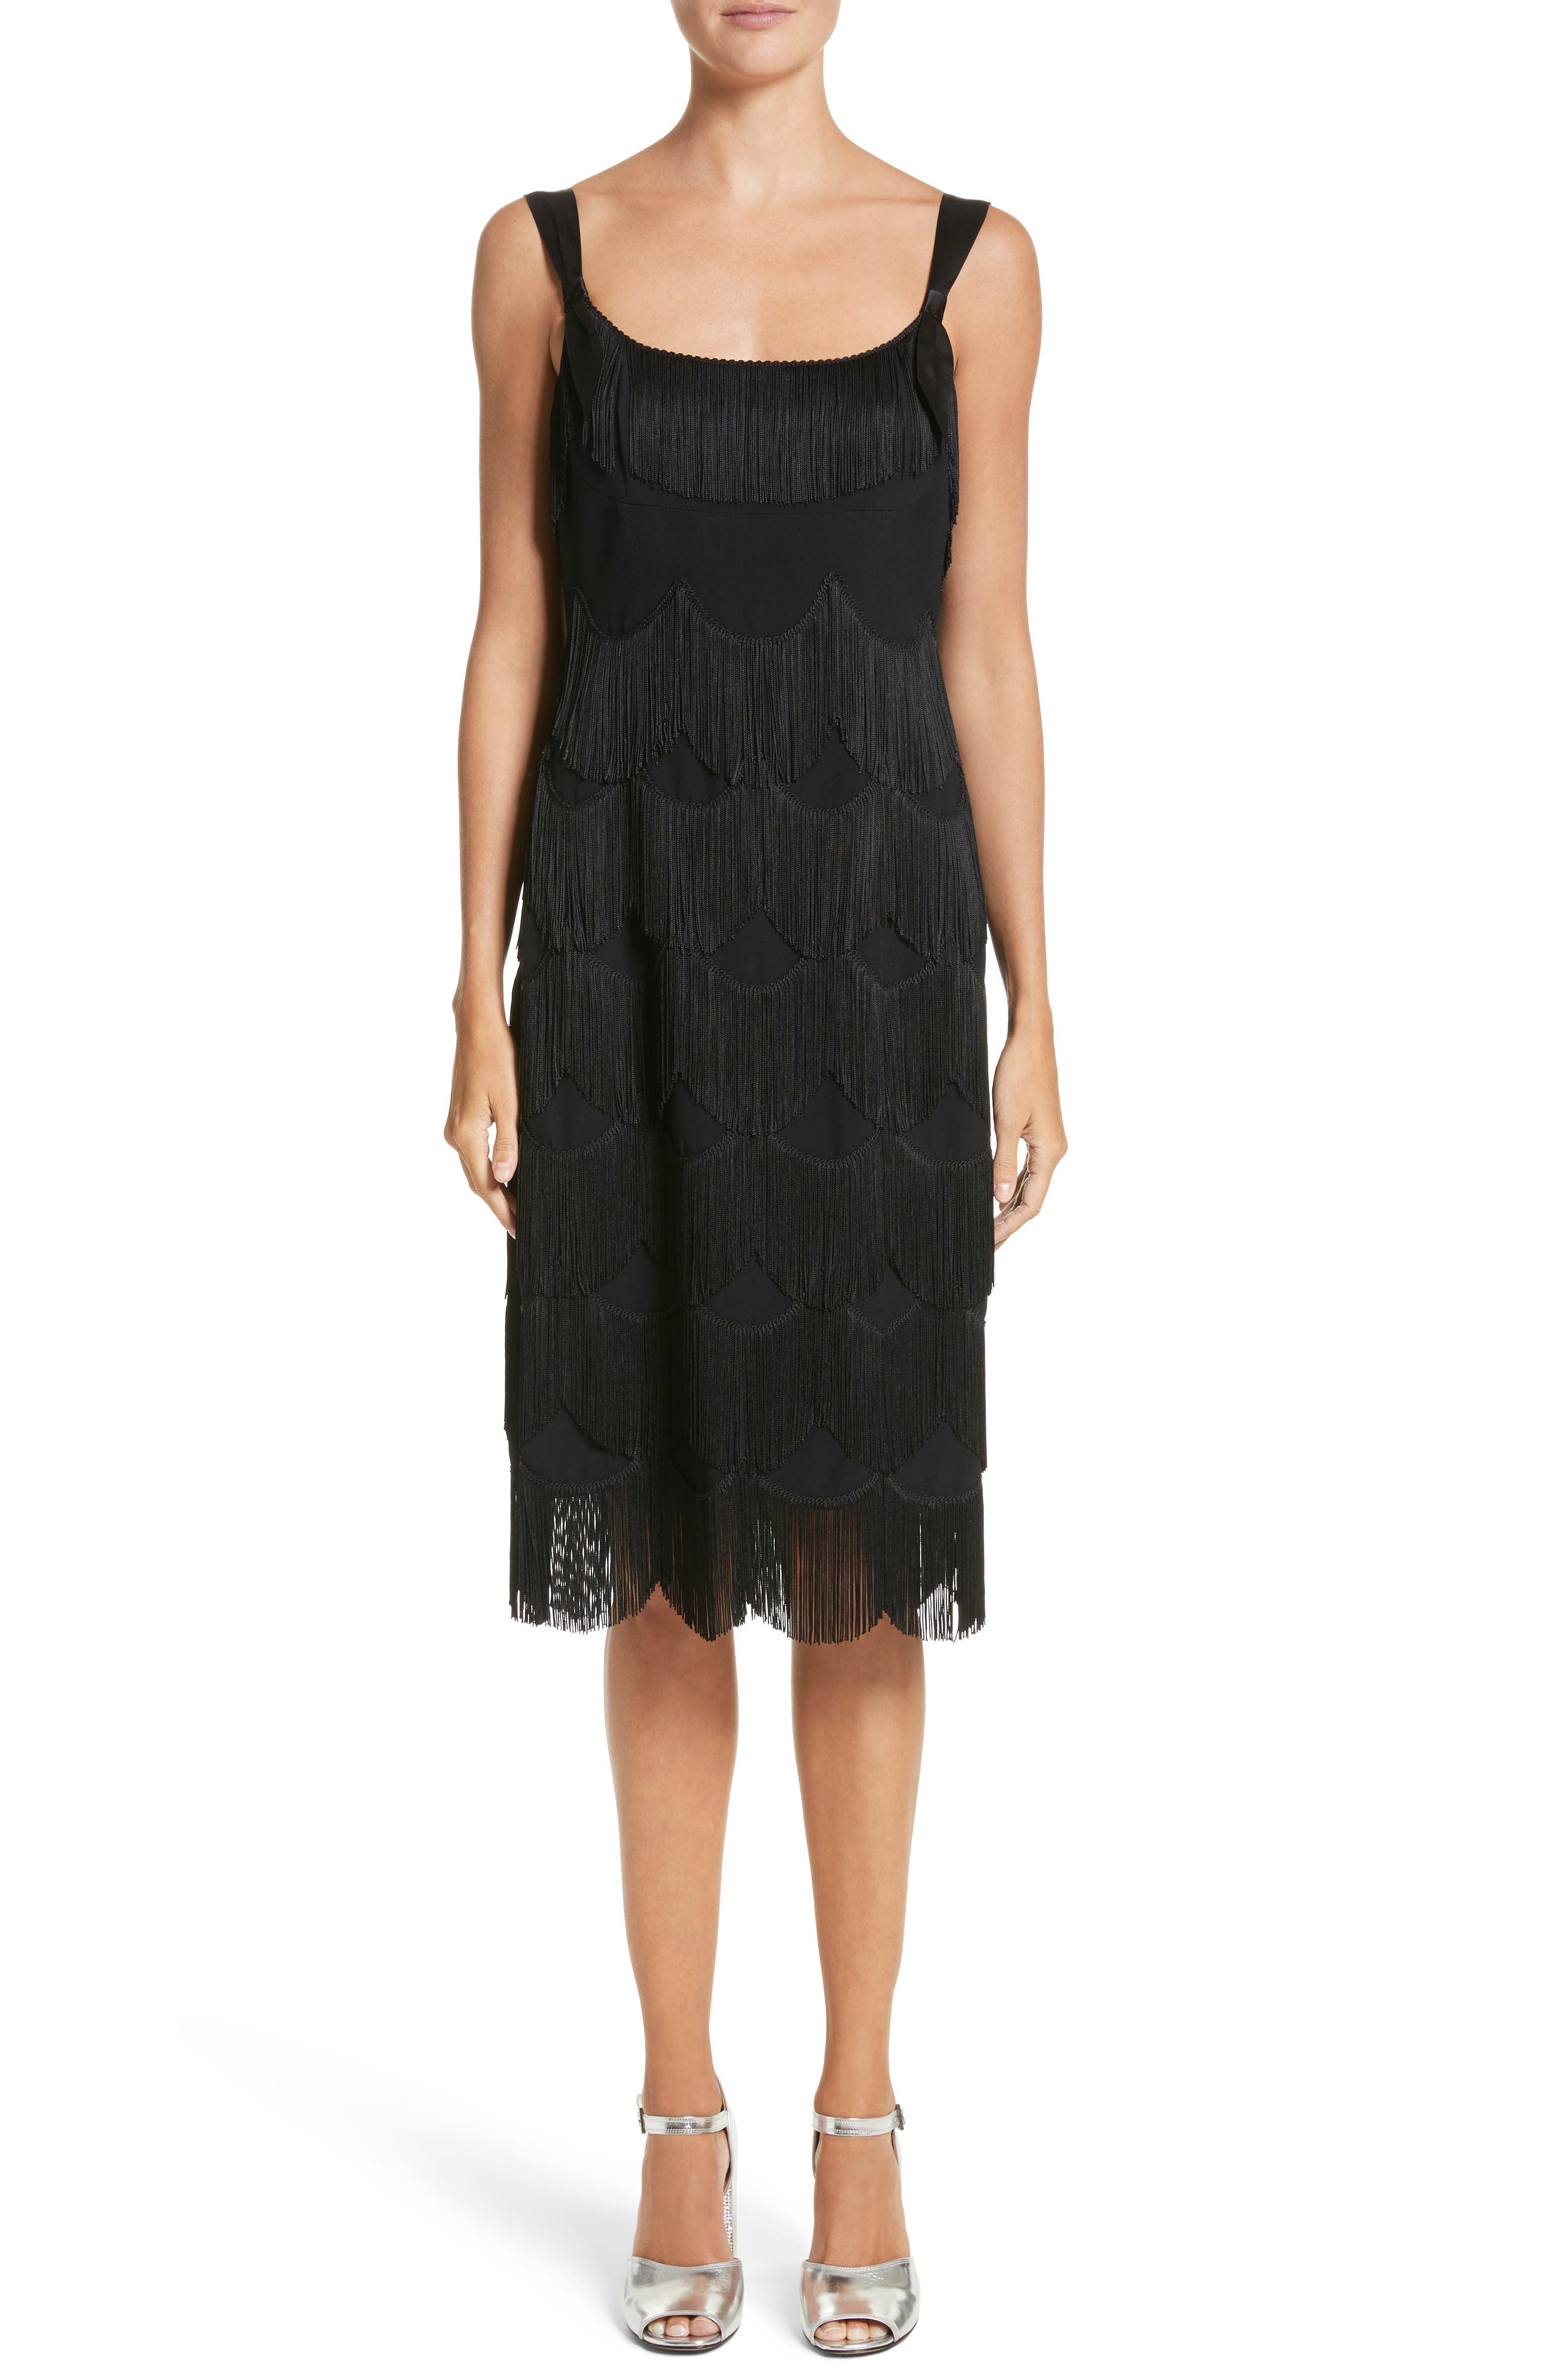 Scalloped Fringe Party Dress,                         Main,                         color, Black